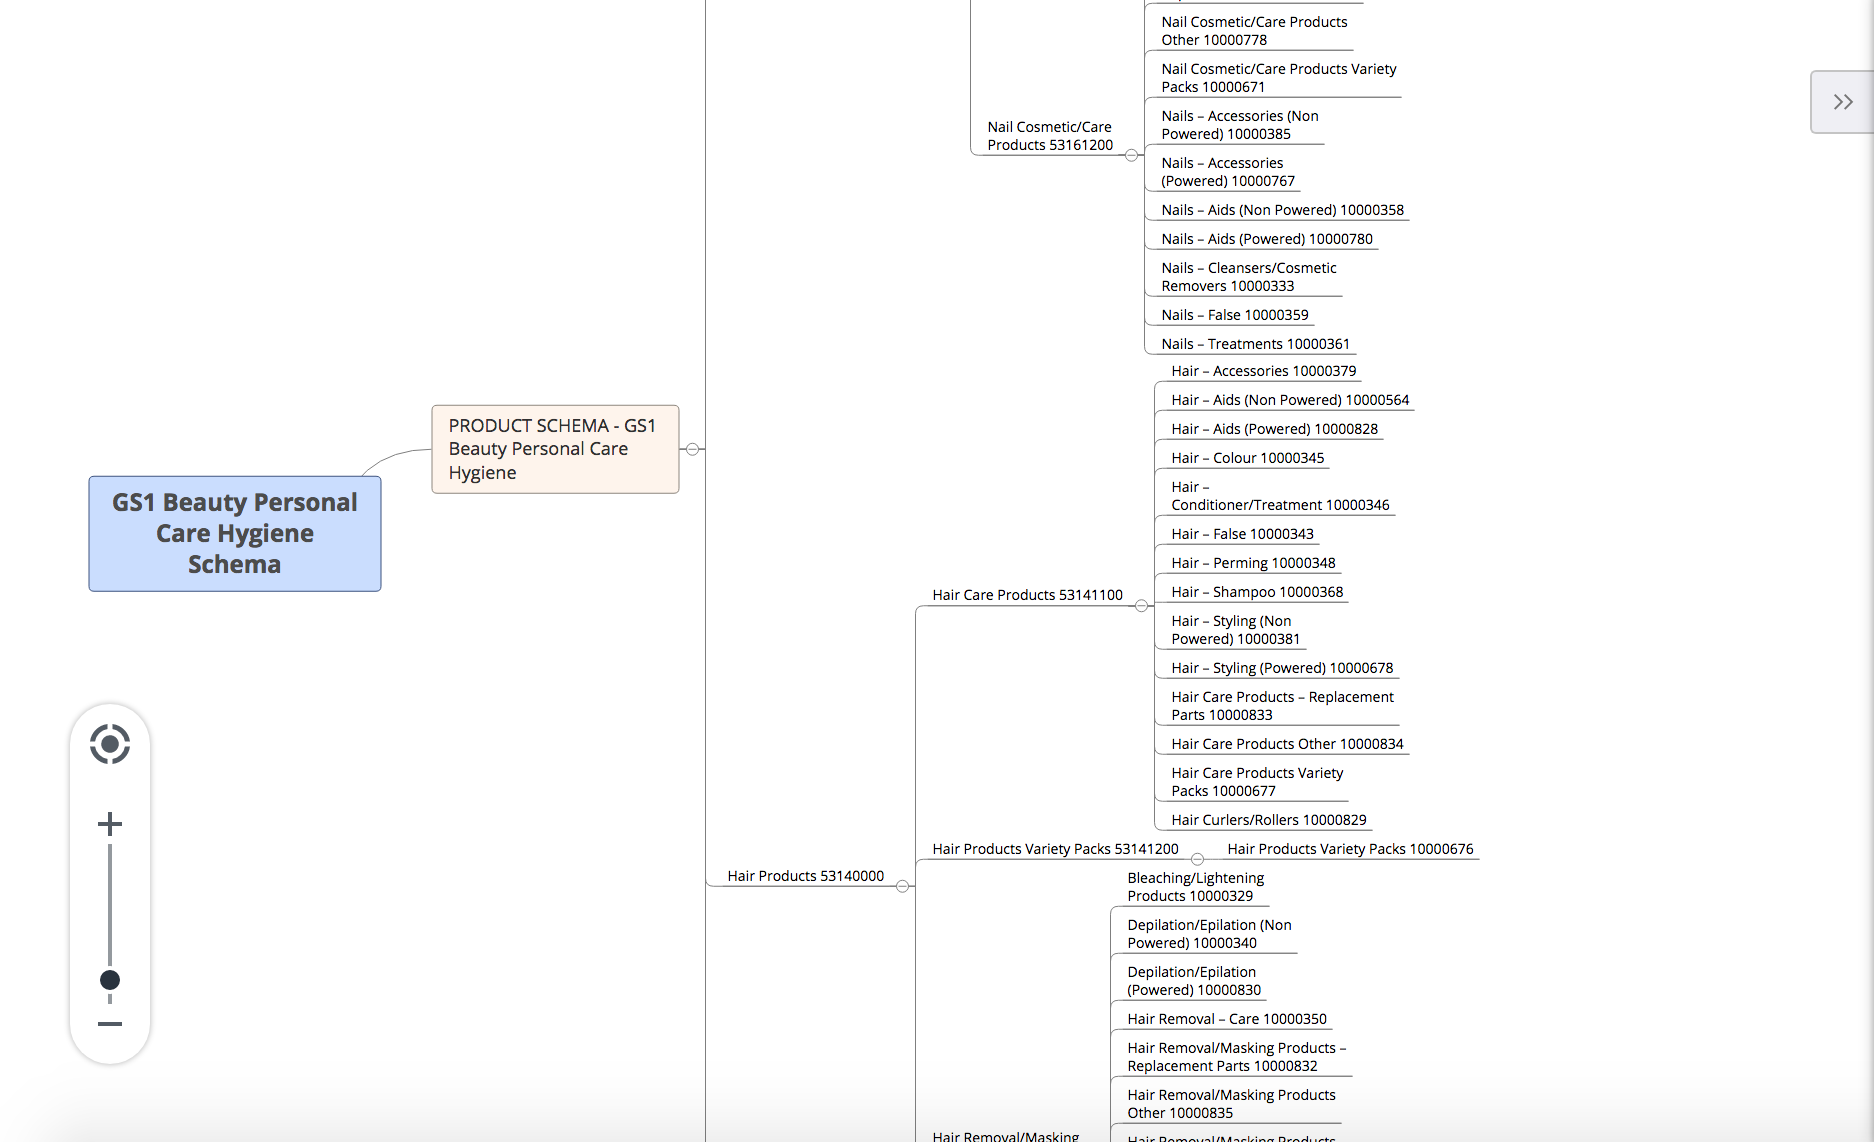 visualizing-gs1-beauty-products-metadata-schema-and-taxonomy-using-xmind.png